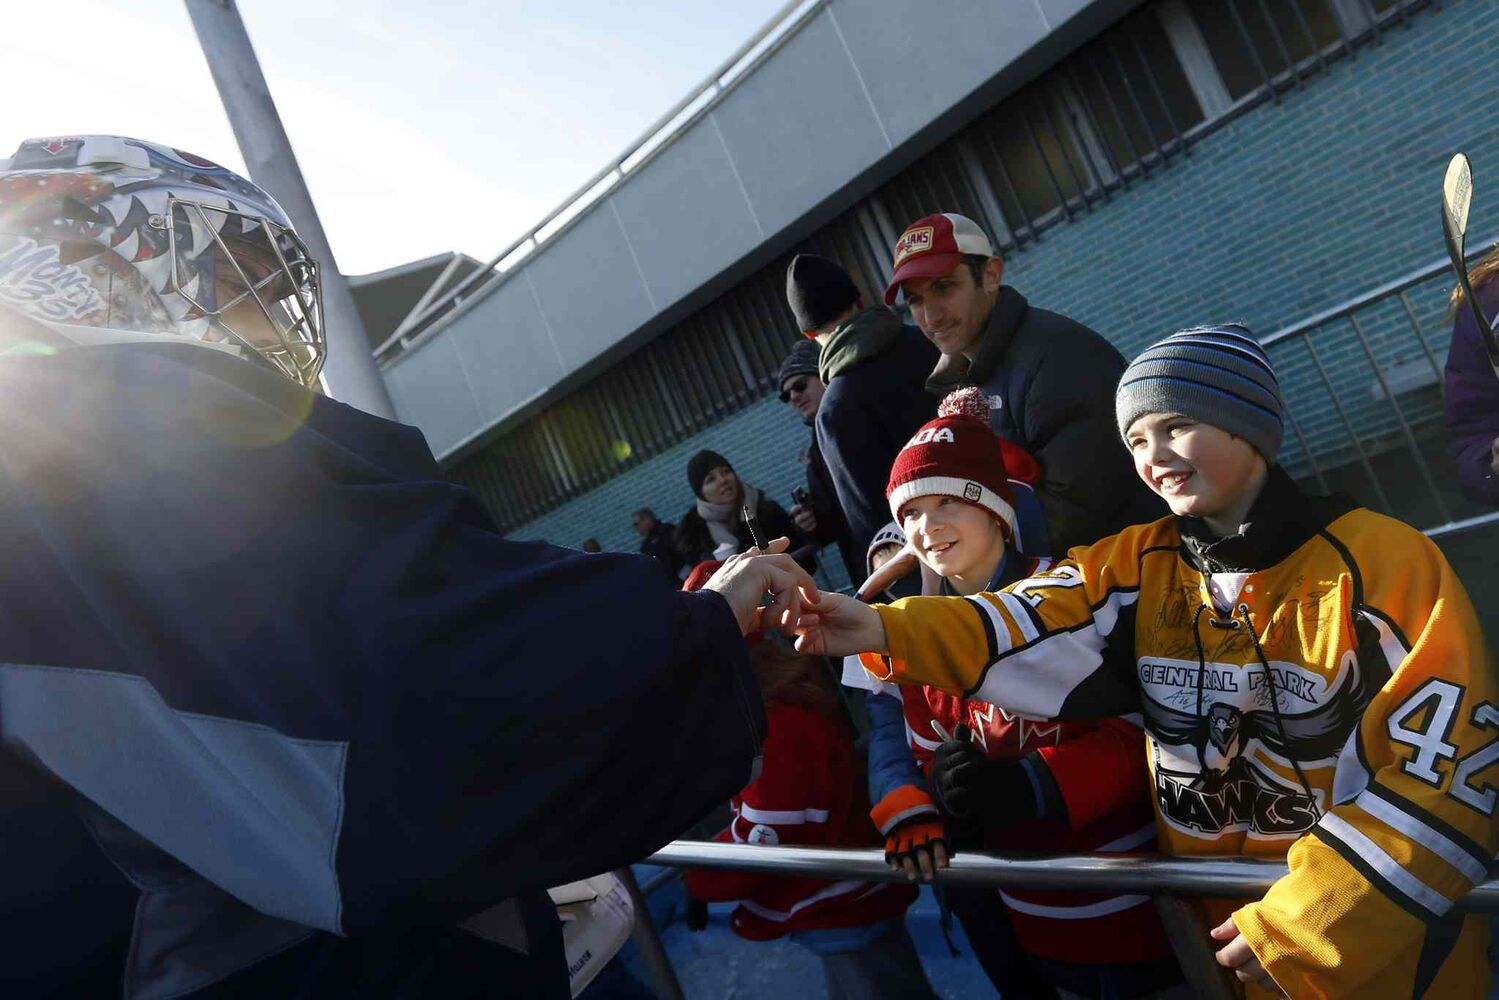 Al Montoya (left) signs autographs for 10-year-old fans Alexander Giebler (centre) and Keith McGann. (Jason DeCrow / The Associated Press)